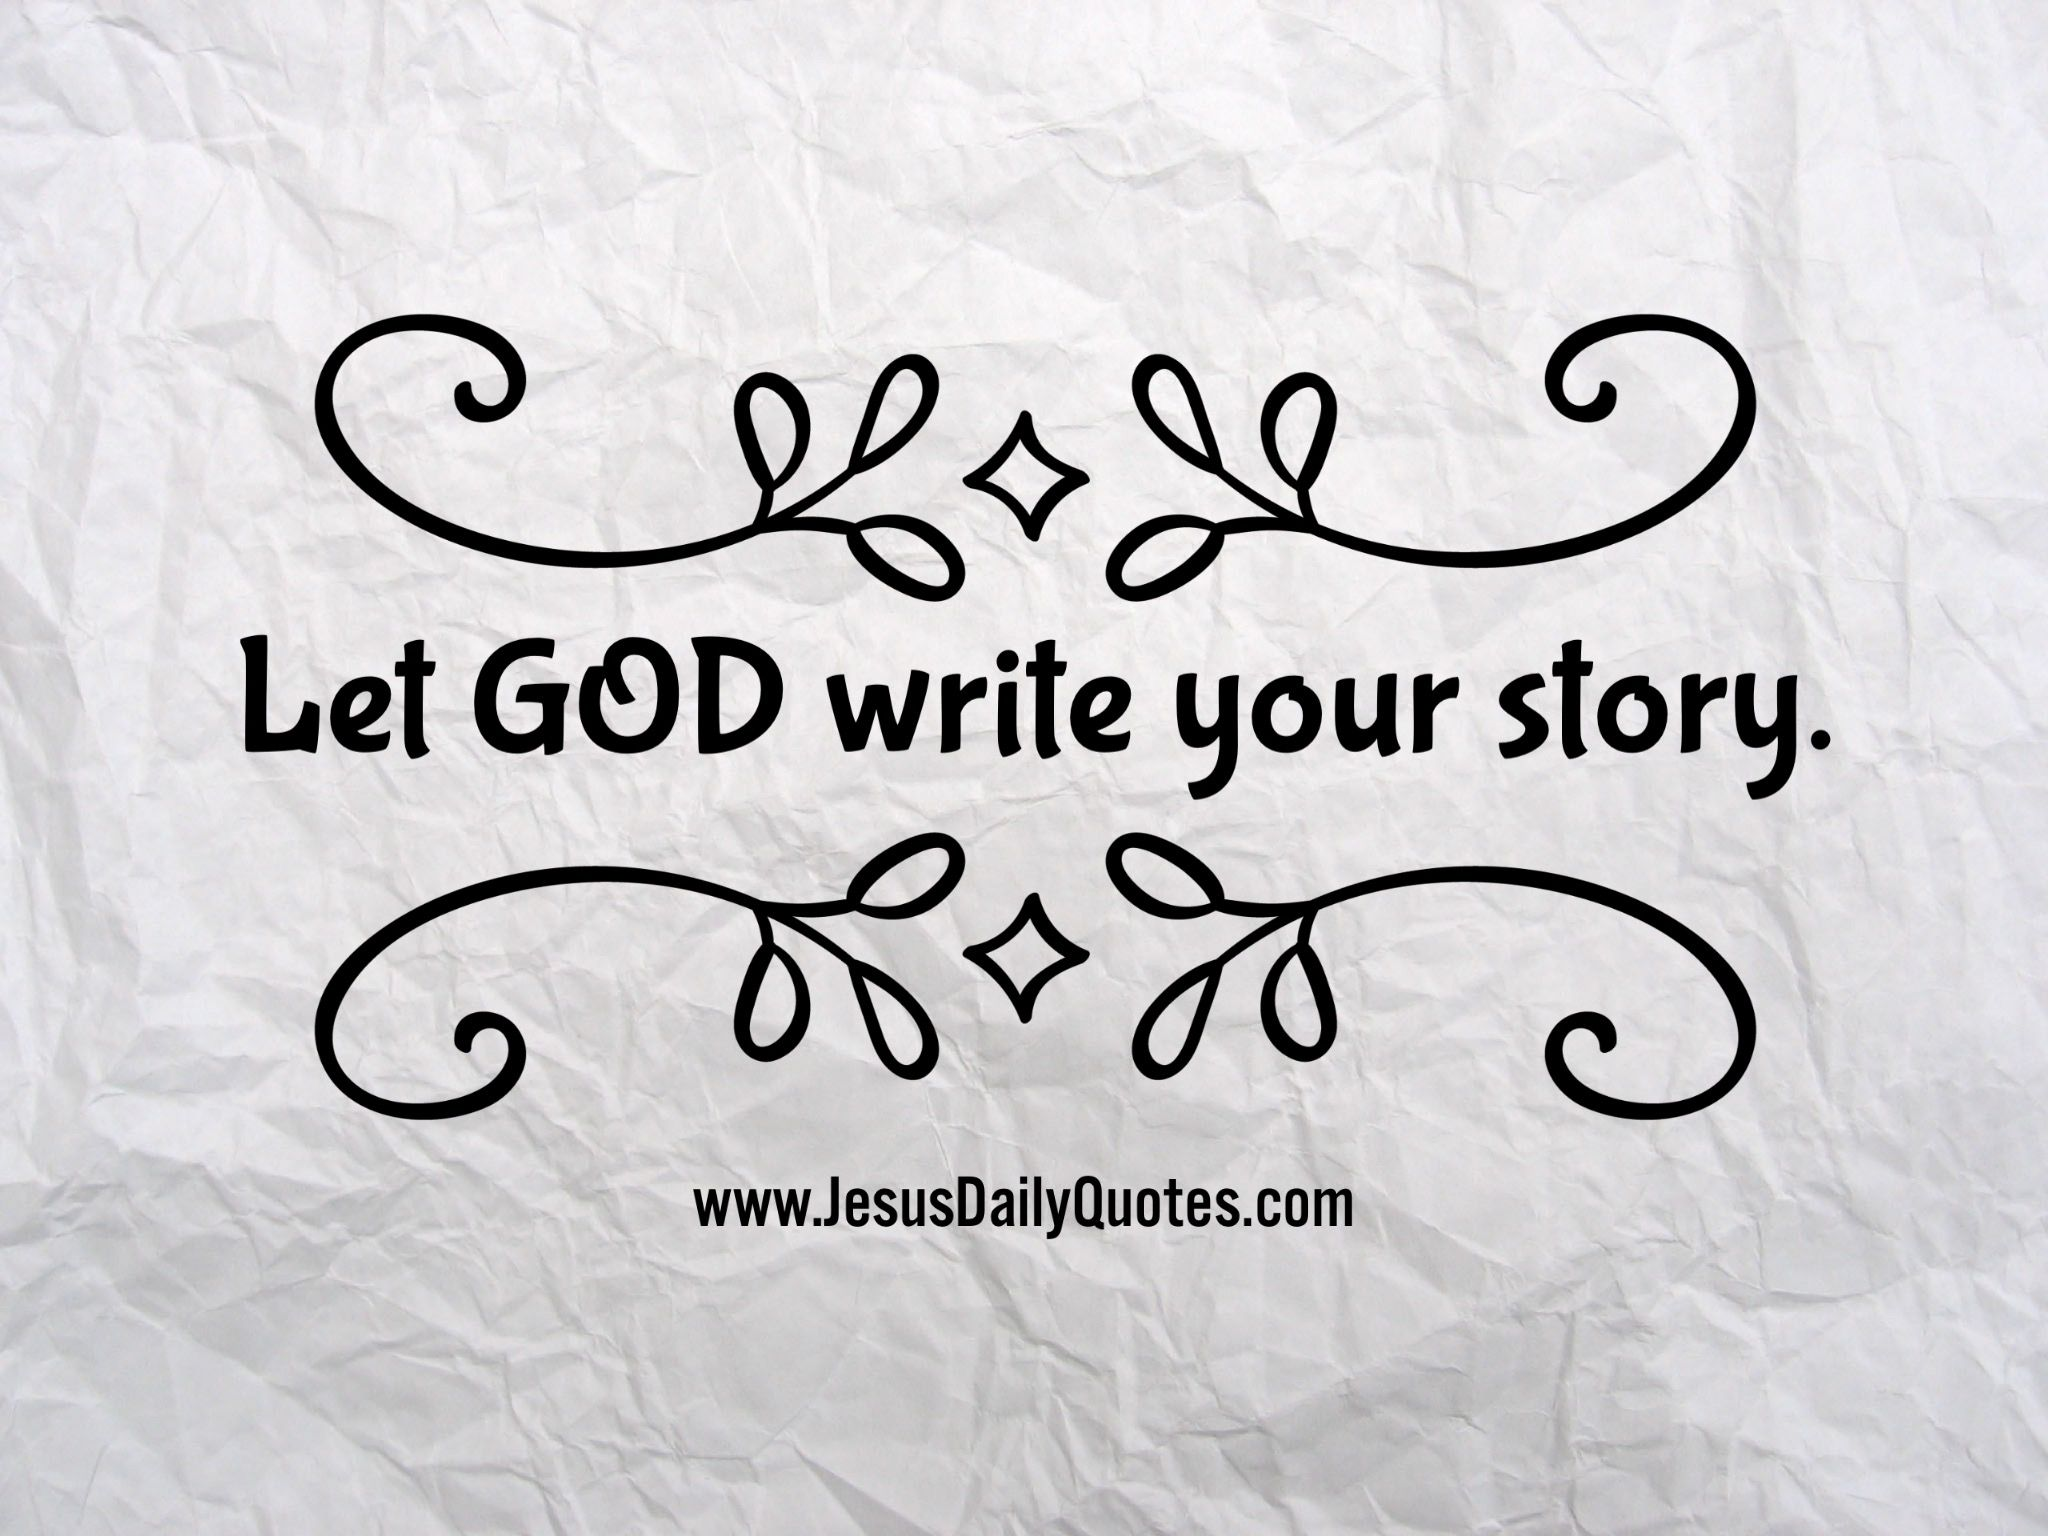 43567 Daily Quotes Let God Quotes